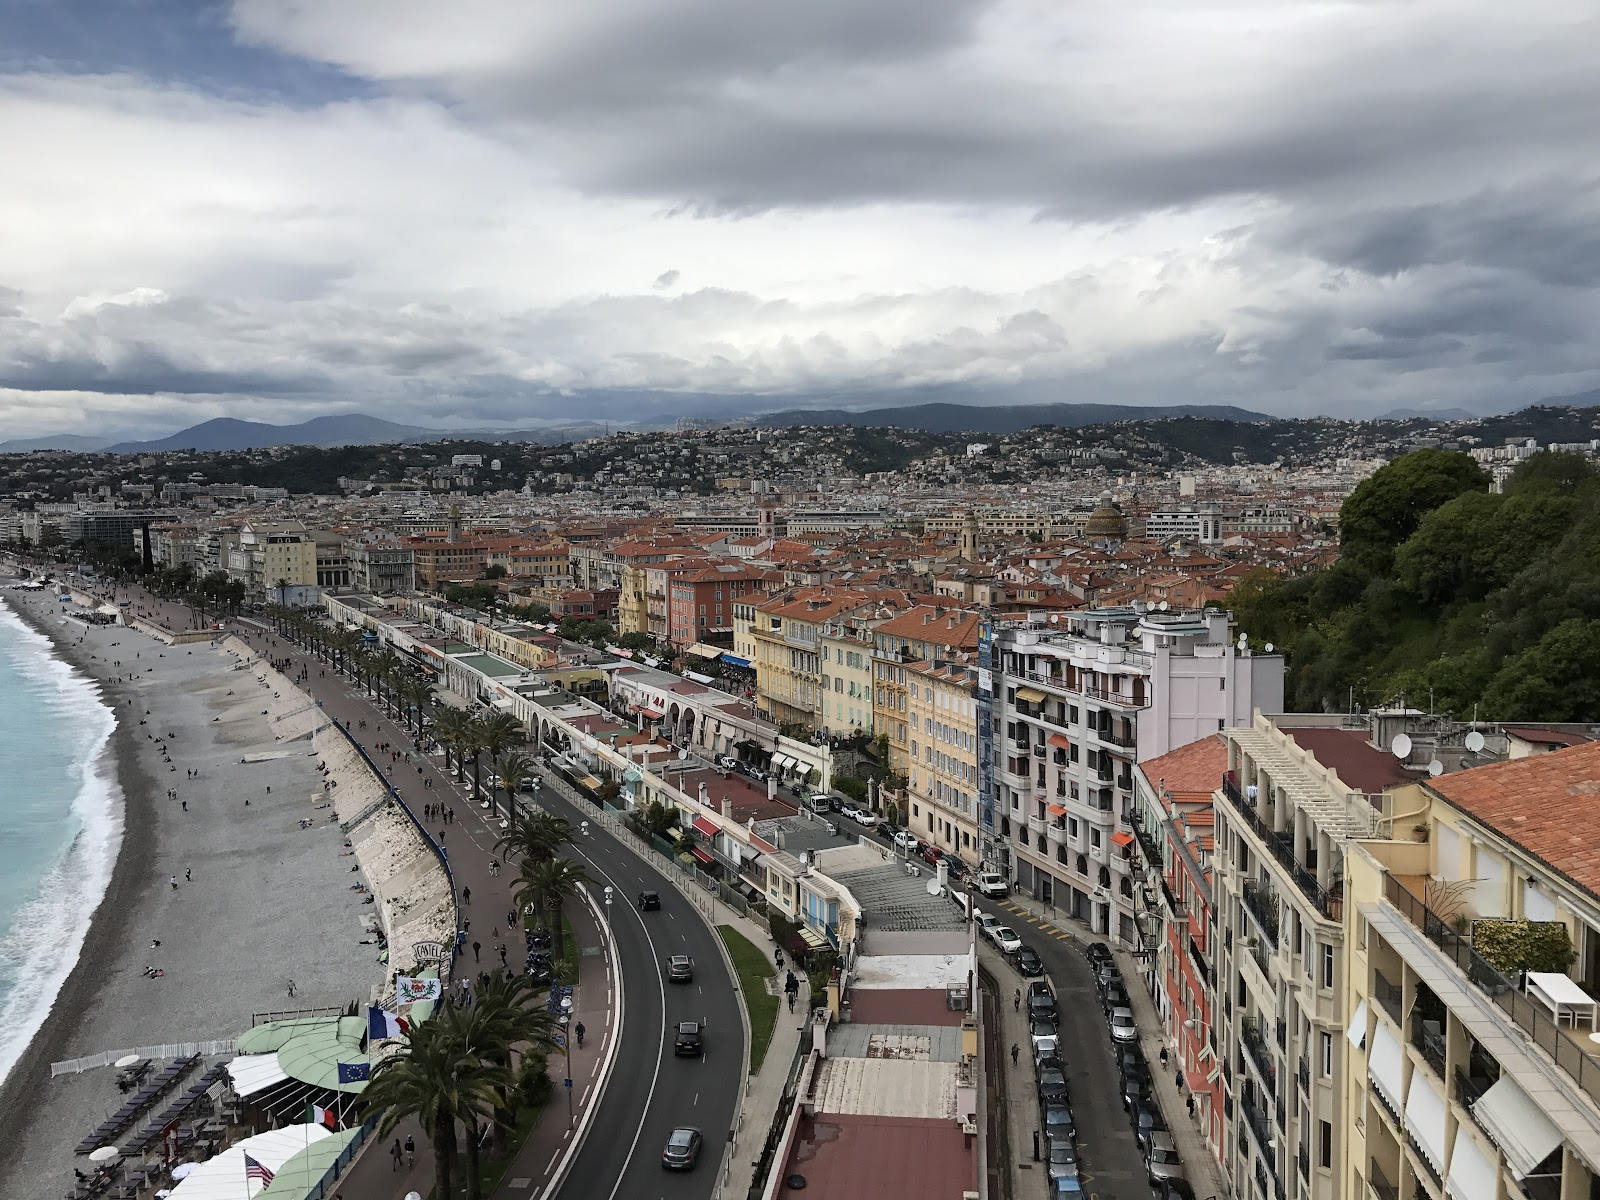 the coast of nice, france. Promenade des anglais, pebble beach, green palm trees and buildings in the distance. cloudy day in cote d'azur. Visit the city during a France road trip